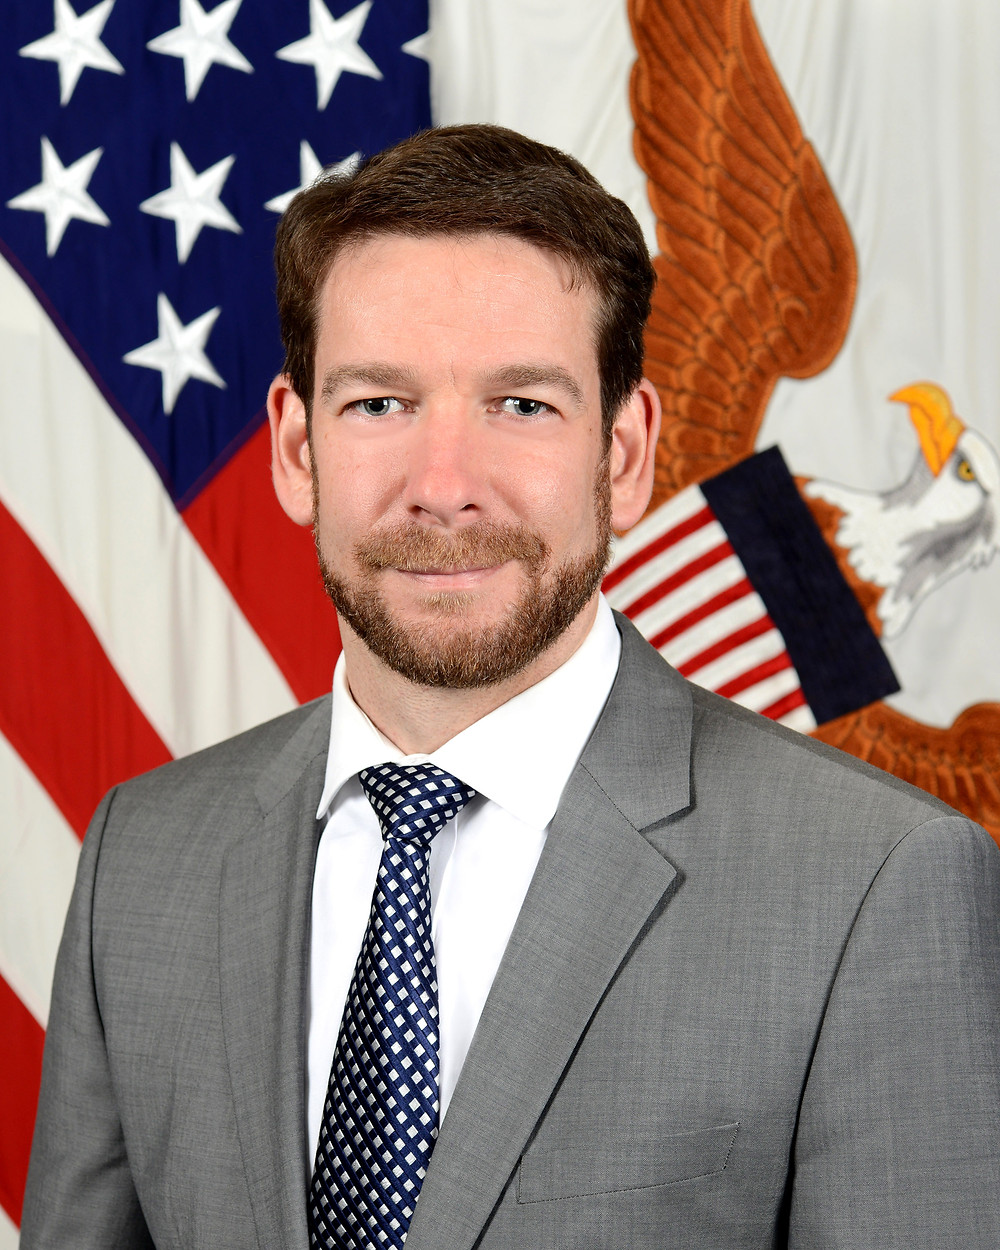 Former senior US Department of Defense official joins Rheinmetall Group to focus on corporate development in the USA